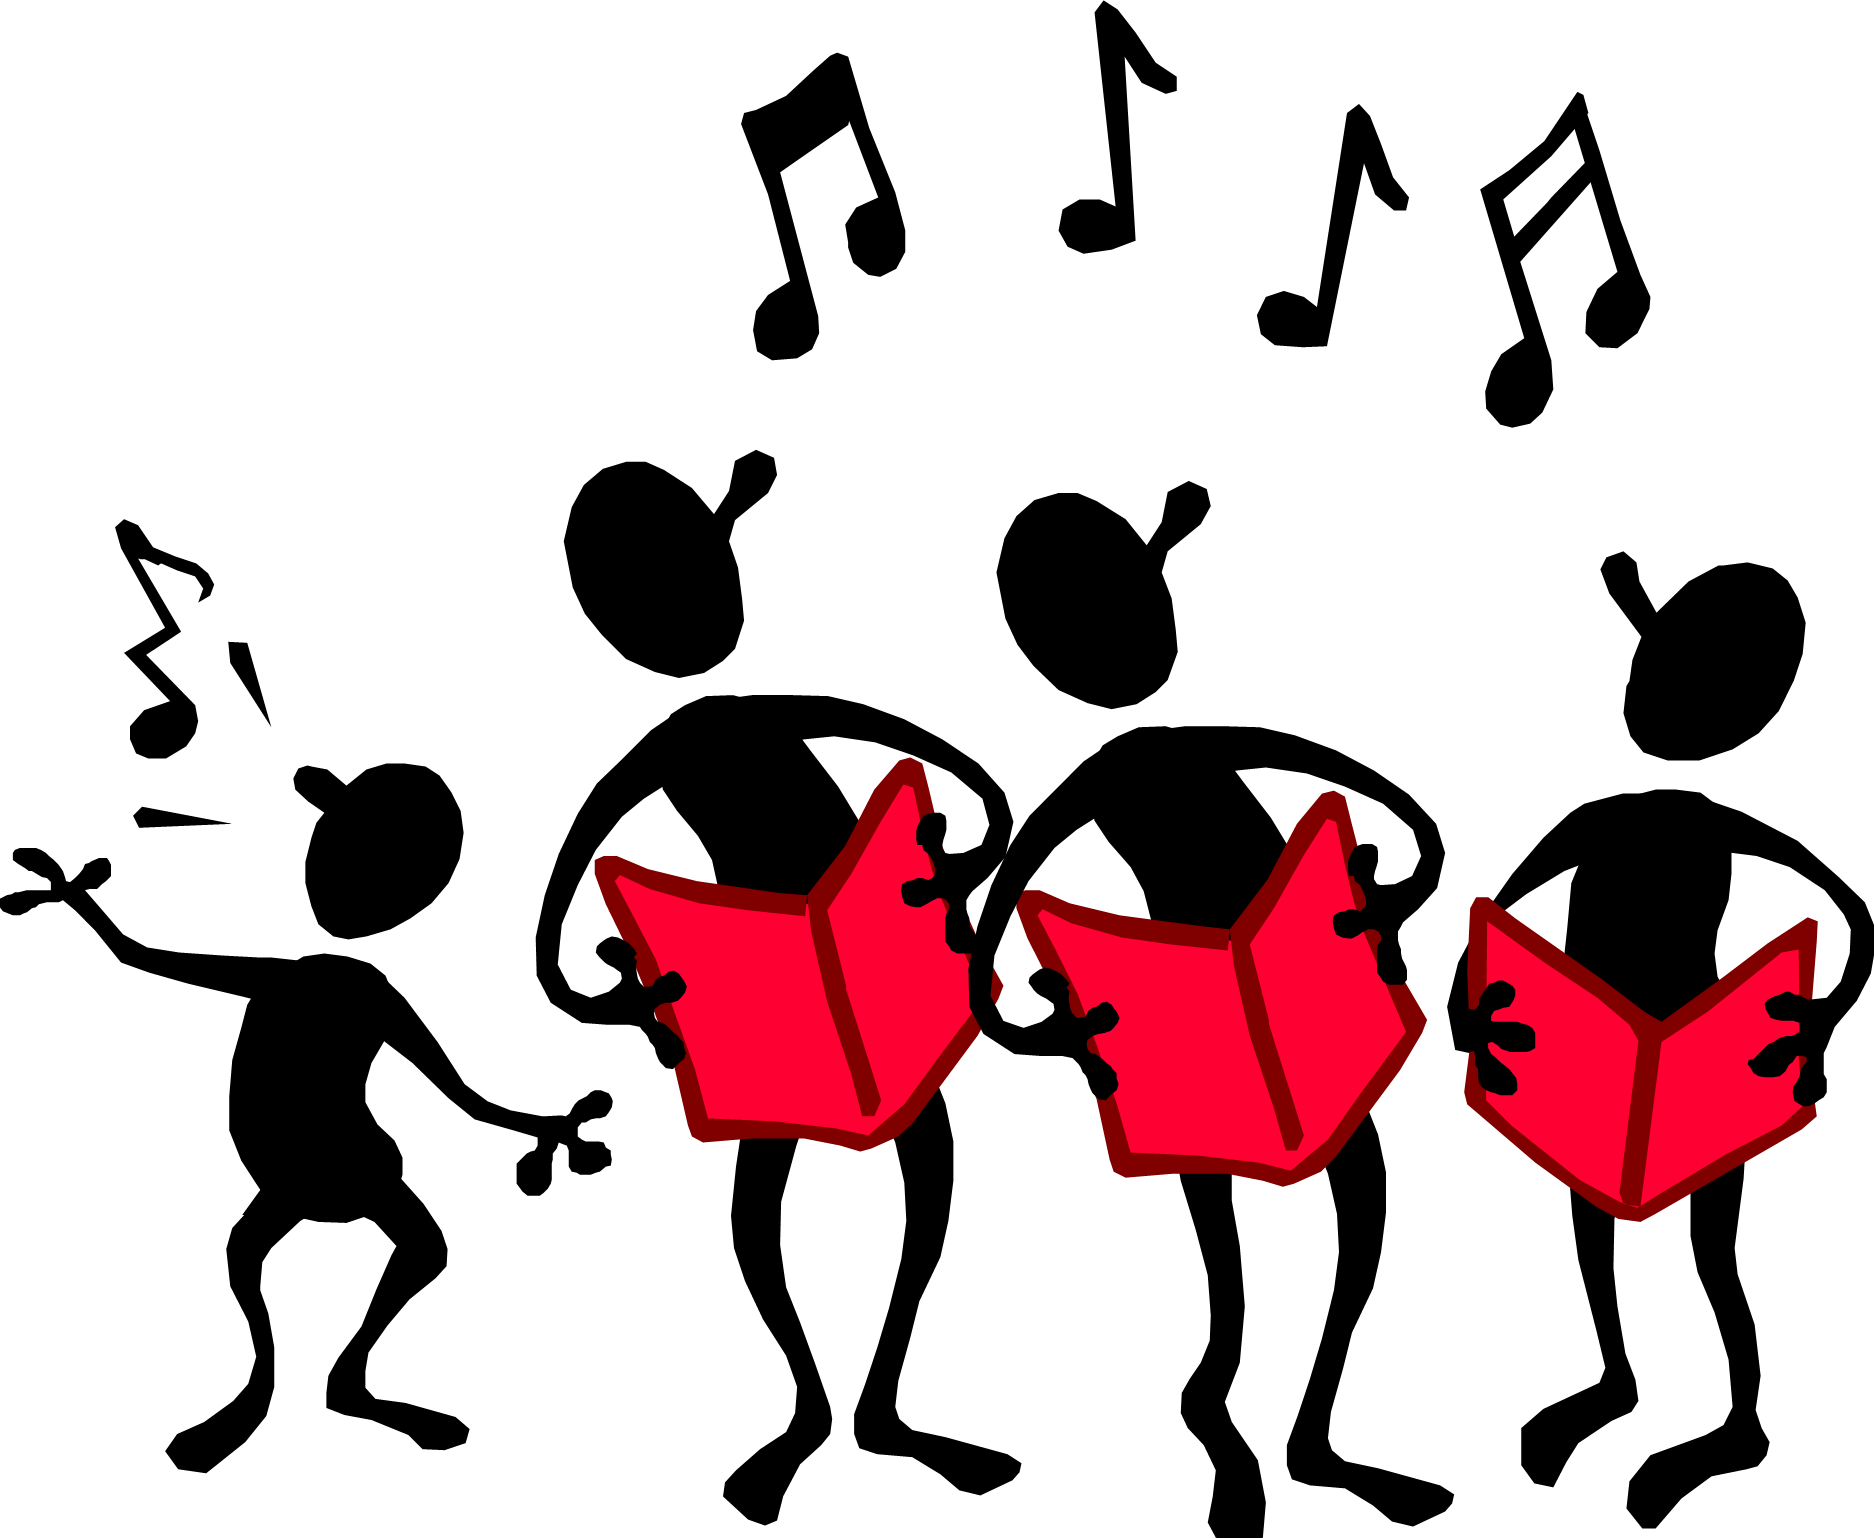 Silly Singing Clipart - Clipart Kid